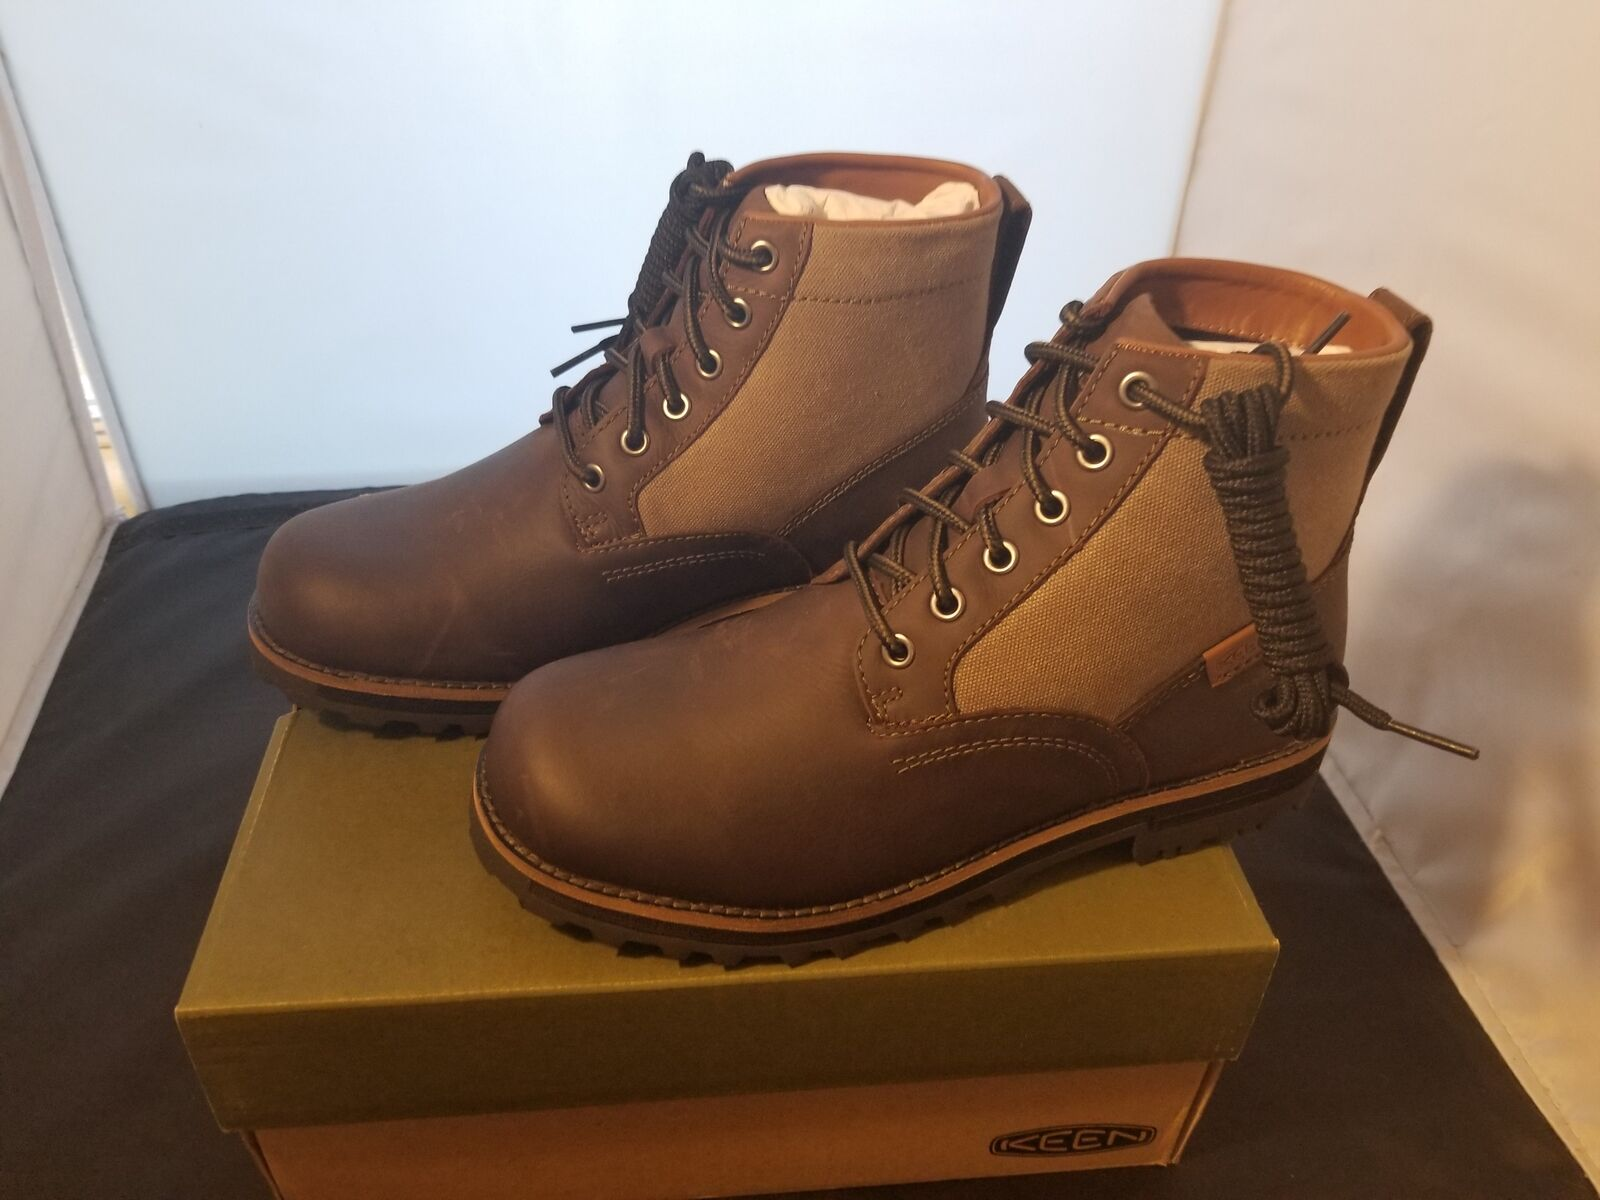 NIB Keen Boots THE 59 Dark Chocolate color Boots Size 7 US Lace Up BRAND NEW